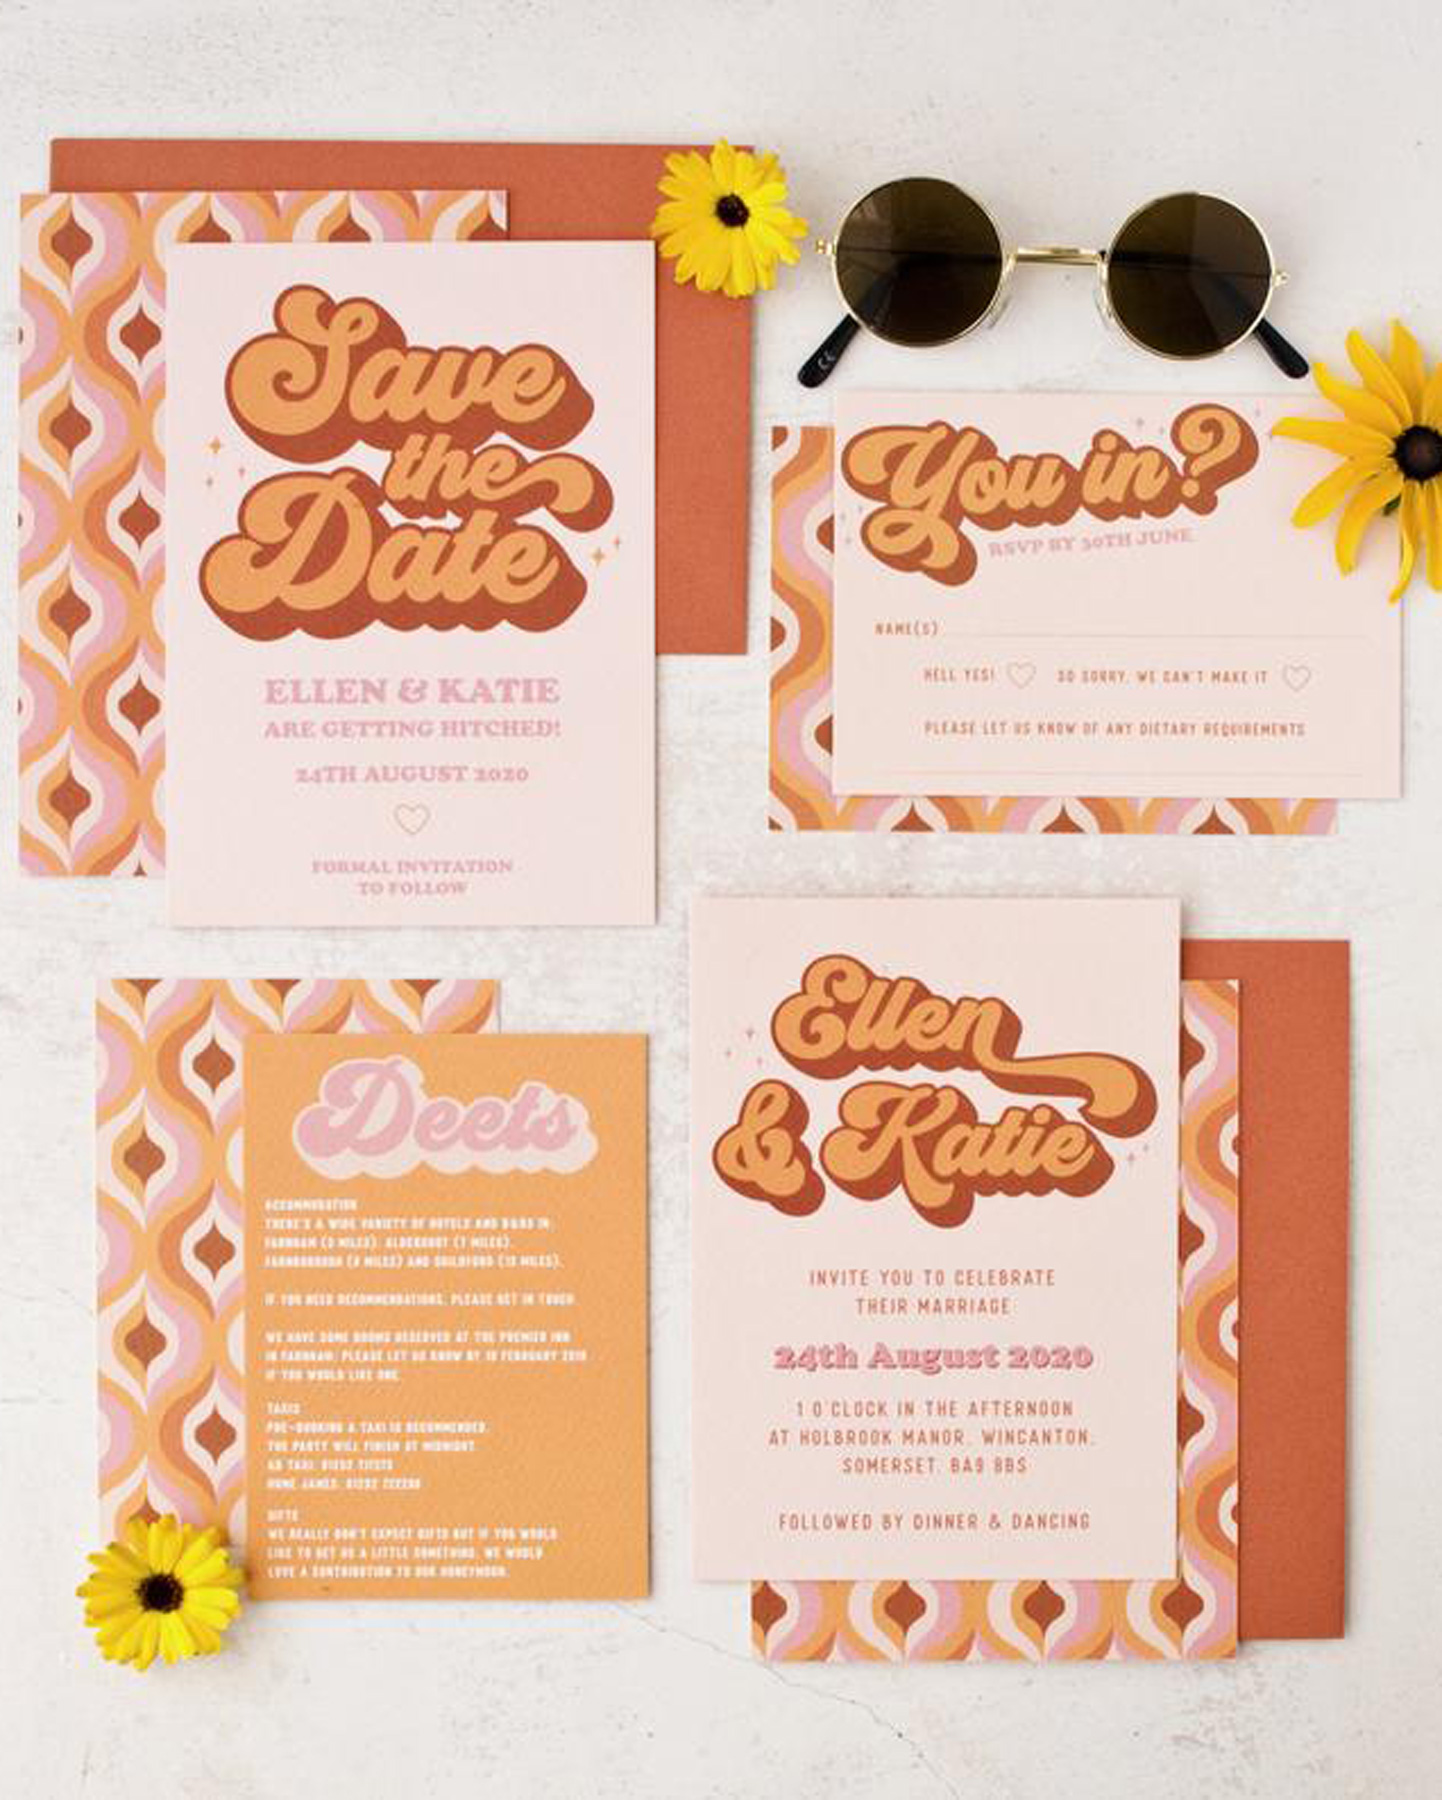 Etsy 2020 Wedding Trends: 70s Decor